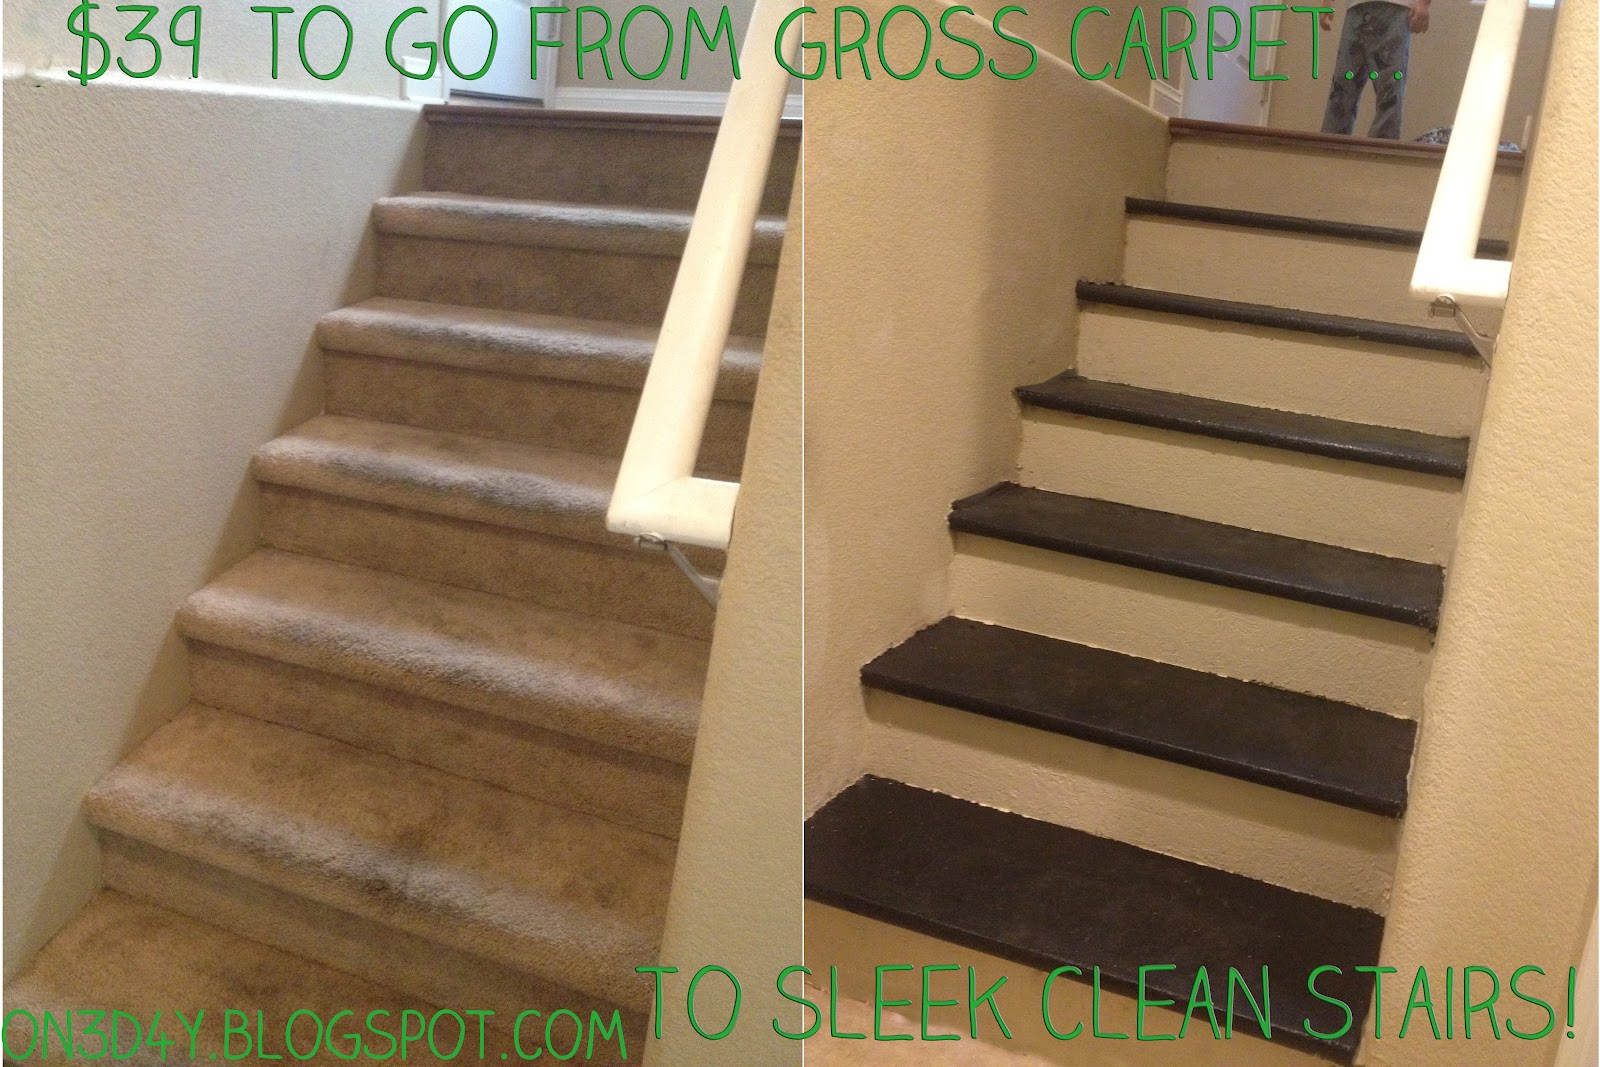 One Day at a Time..: Inexpensive DIY Carpet to Wood Stairs